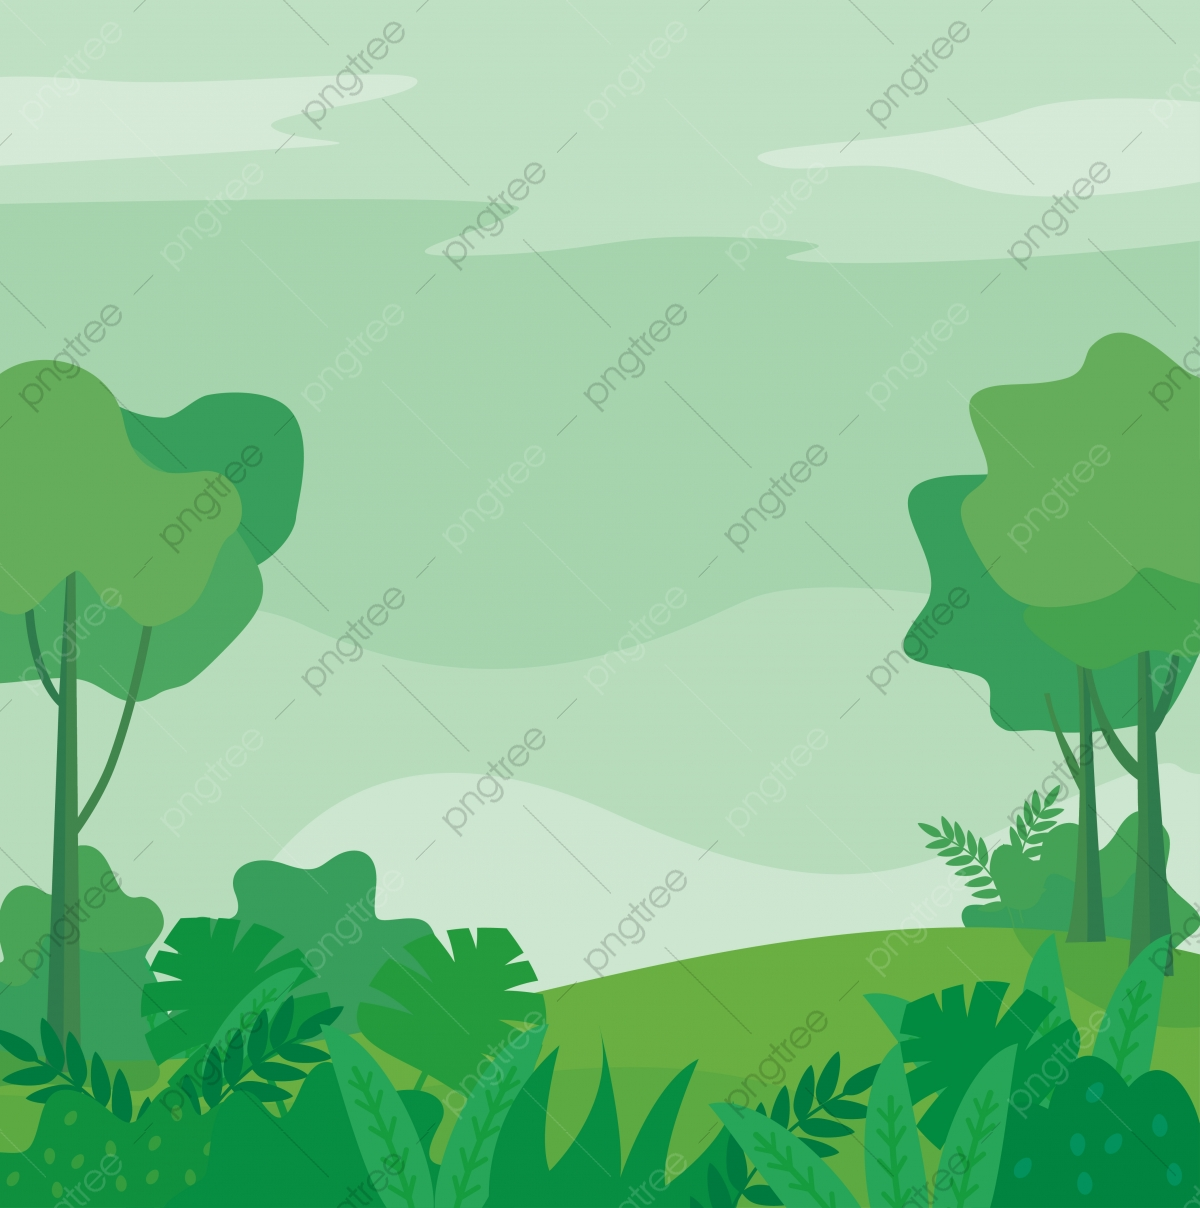 Nature Landscape Vector Illustration With Green Color